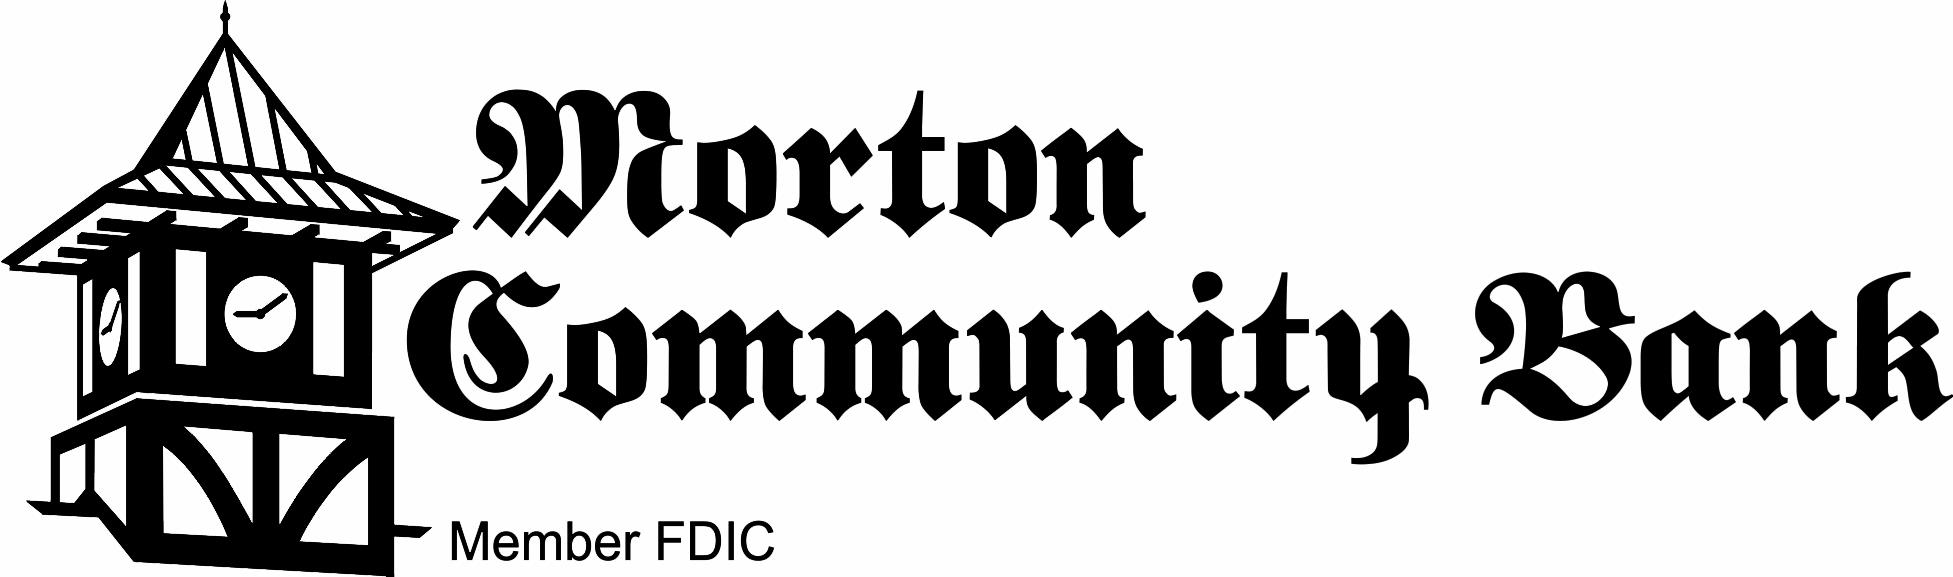 Morton Community Bank logo